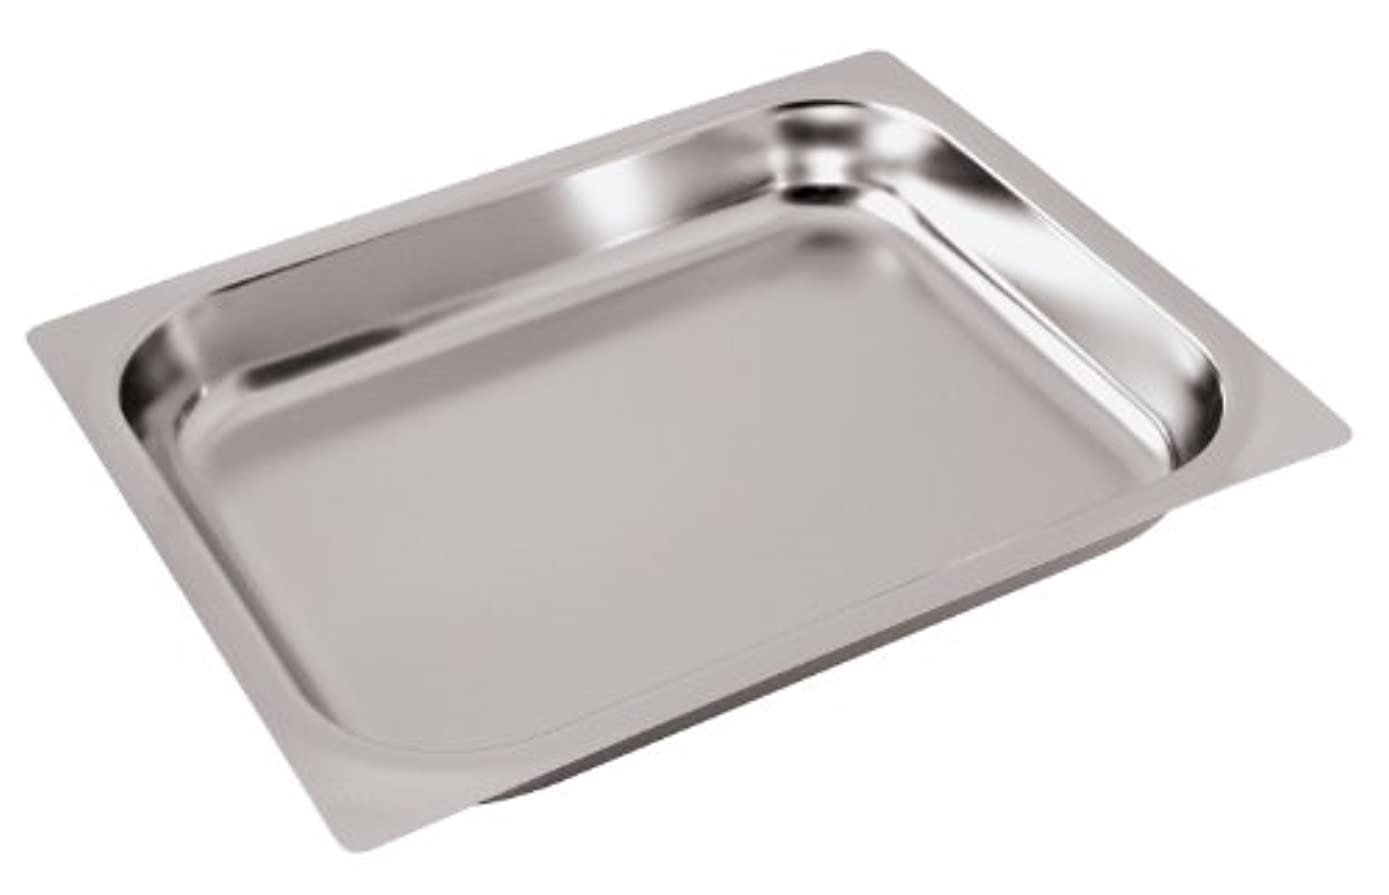 温度計好ましいピッチャーPaderno World Cuisine 36cm by 32cm Stainless-steel Baking Sheet for Hotel Pan - 2/3 (depth: 1.9cm)